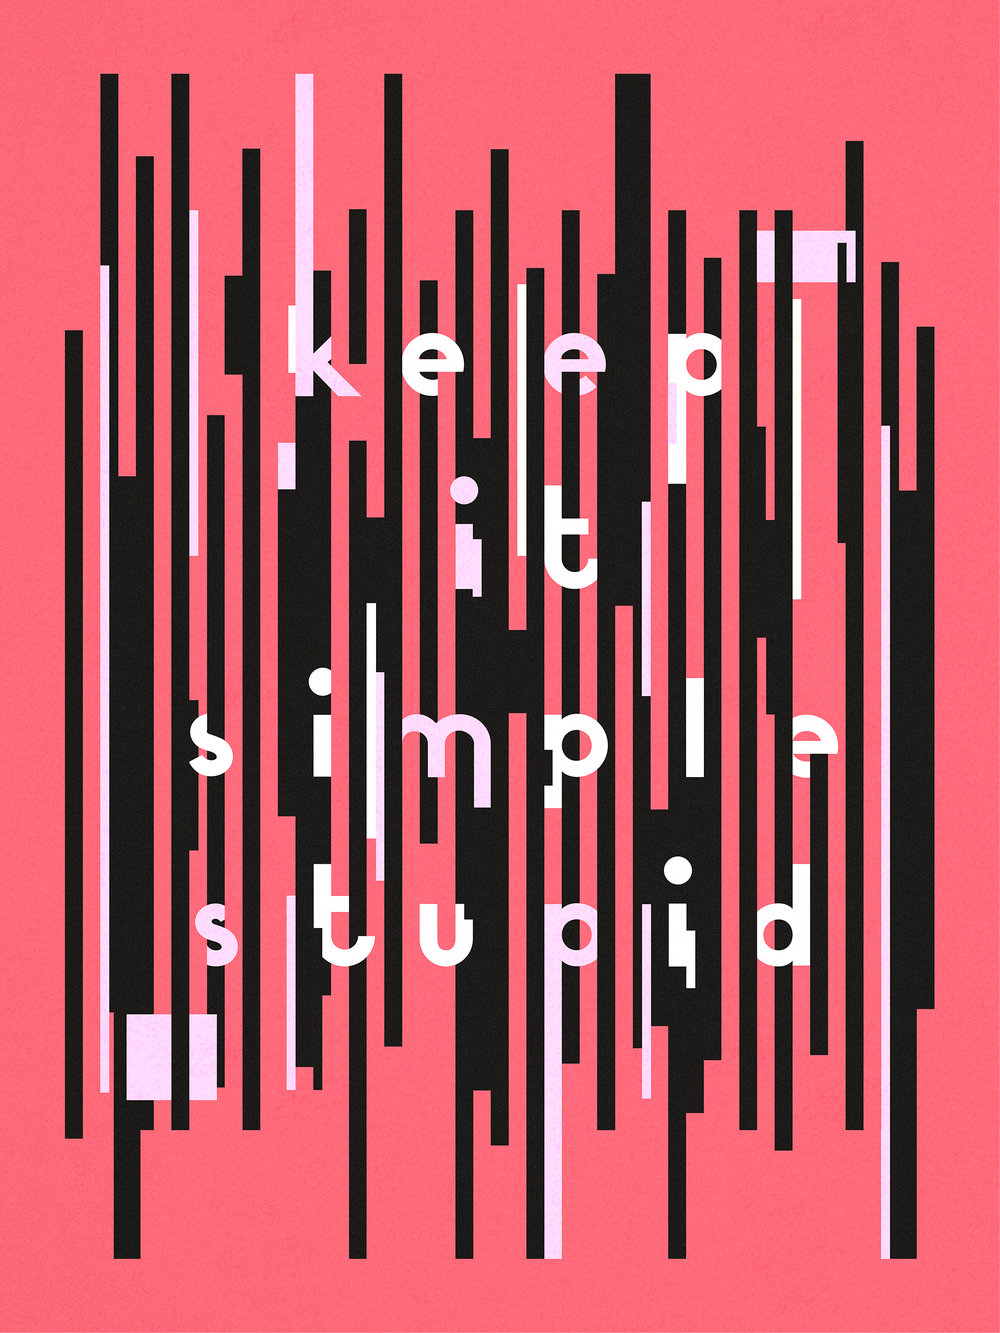 Keep It Simple Stupid typographic poster by Abby Haddican